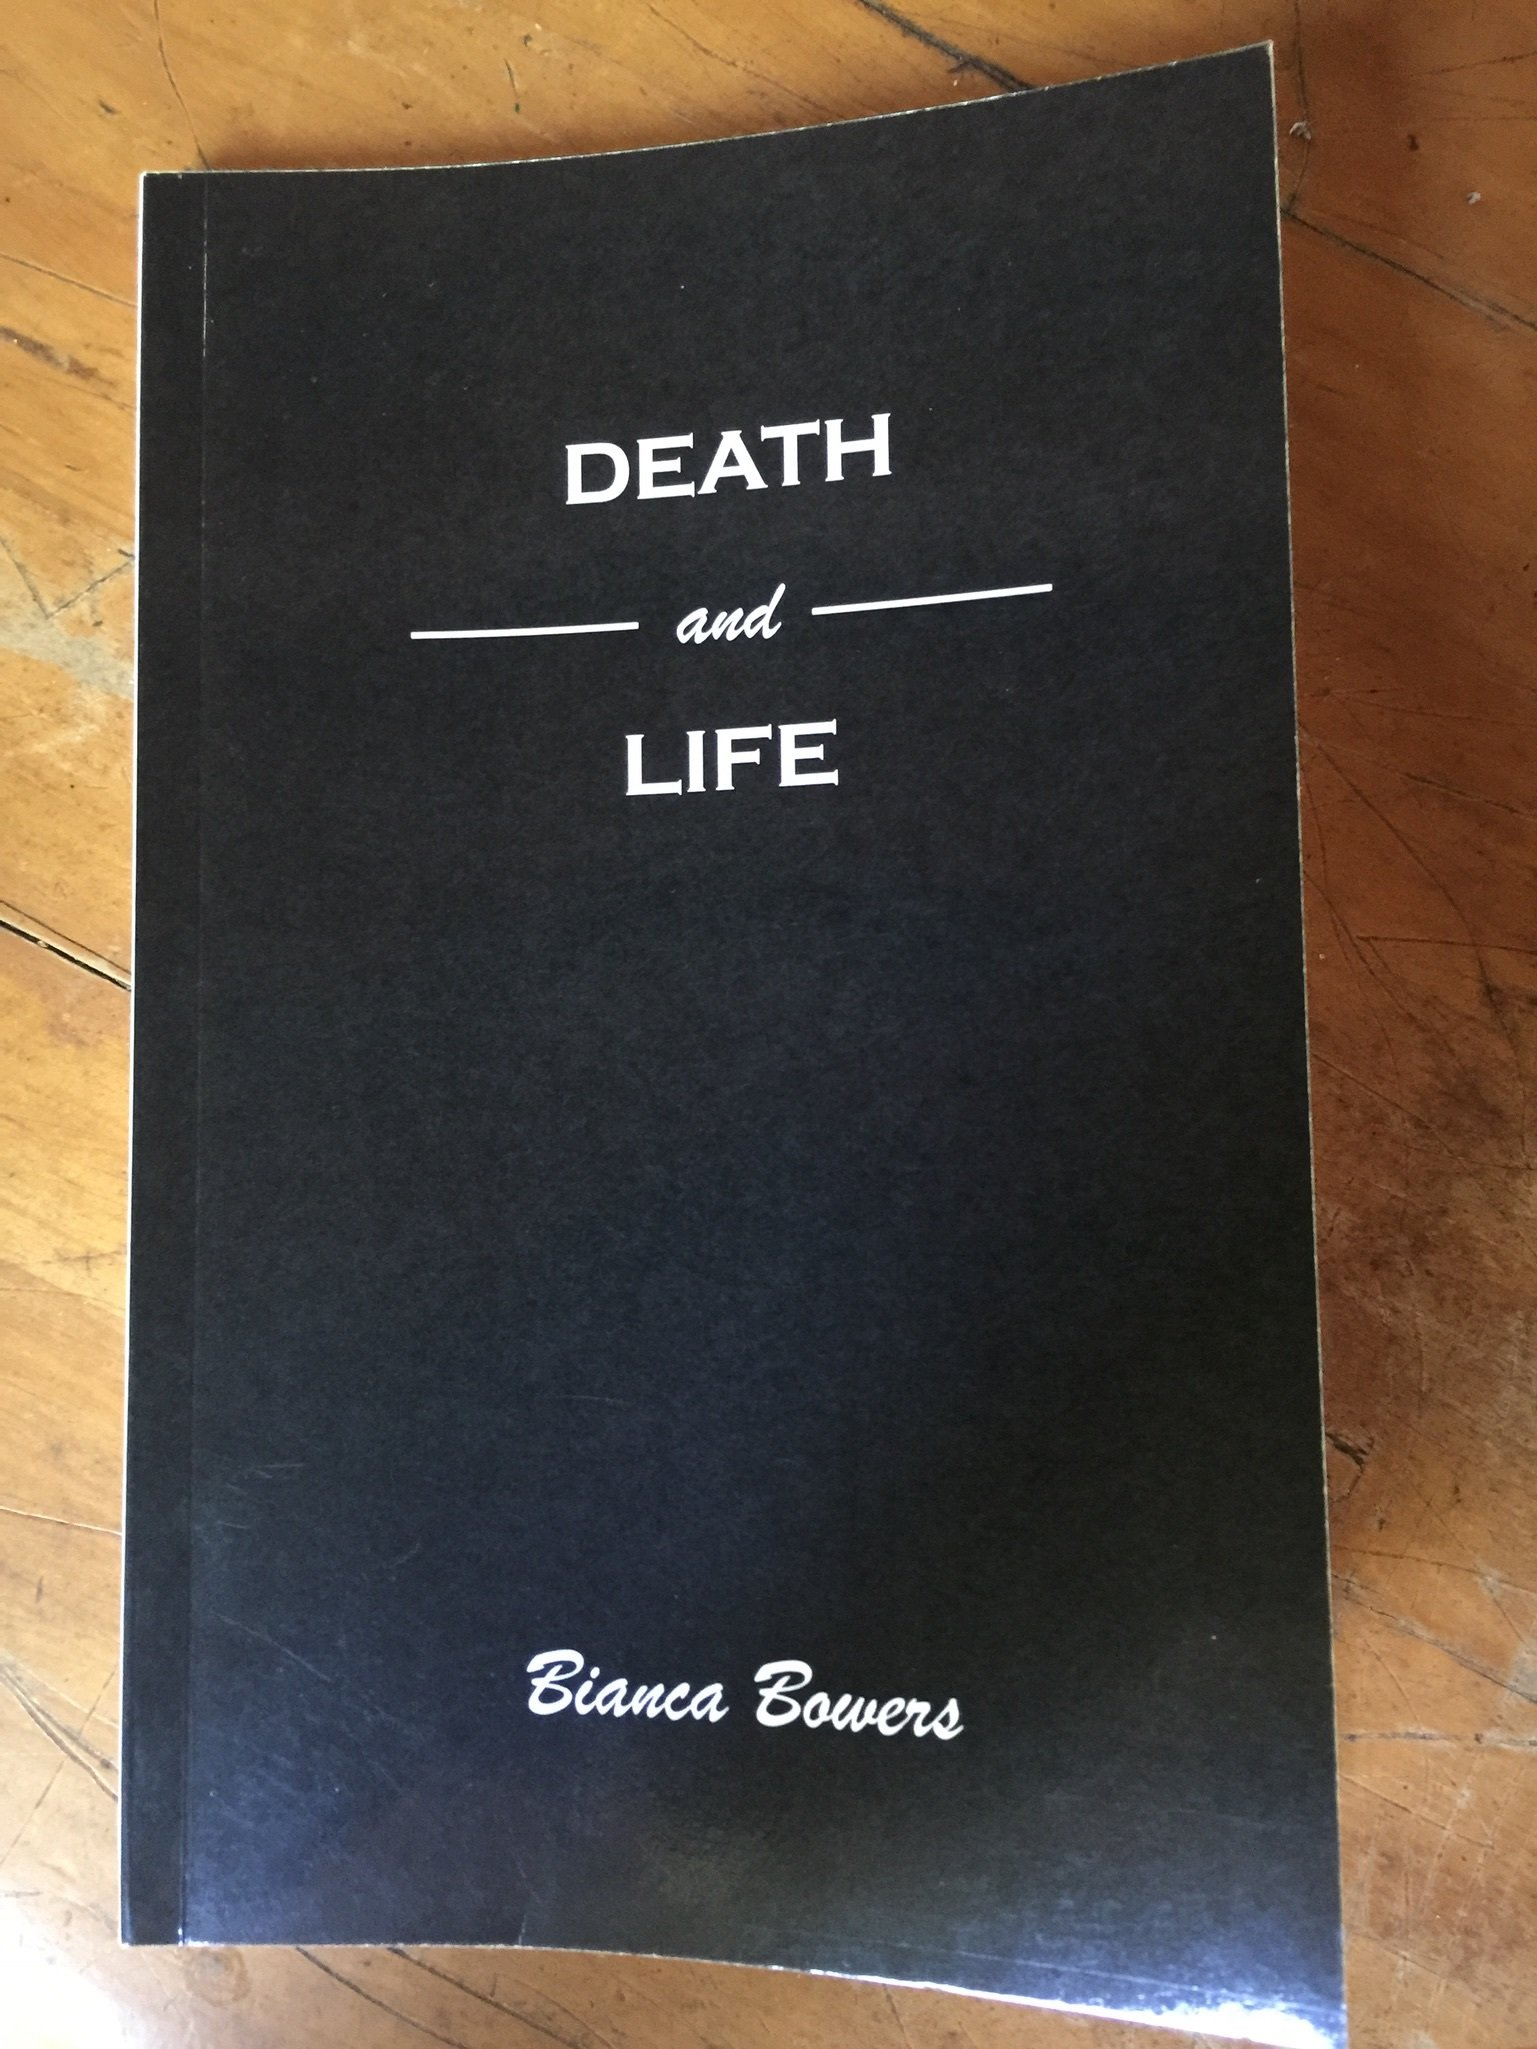 Death and Life (Discounted due to defect) 00003